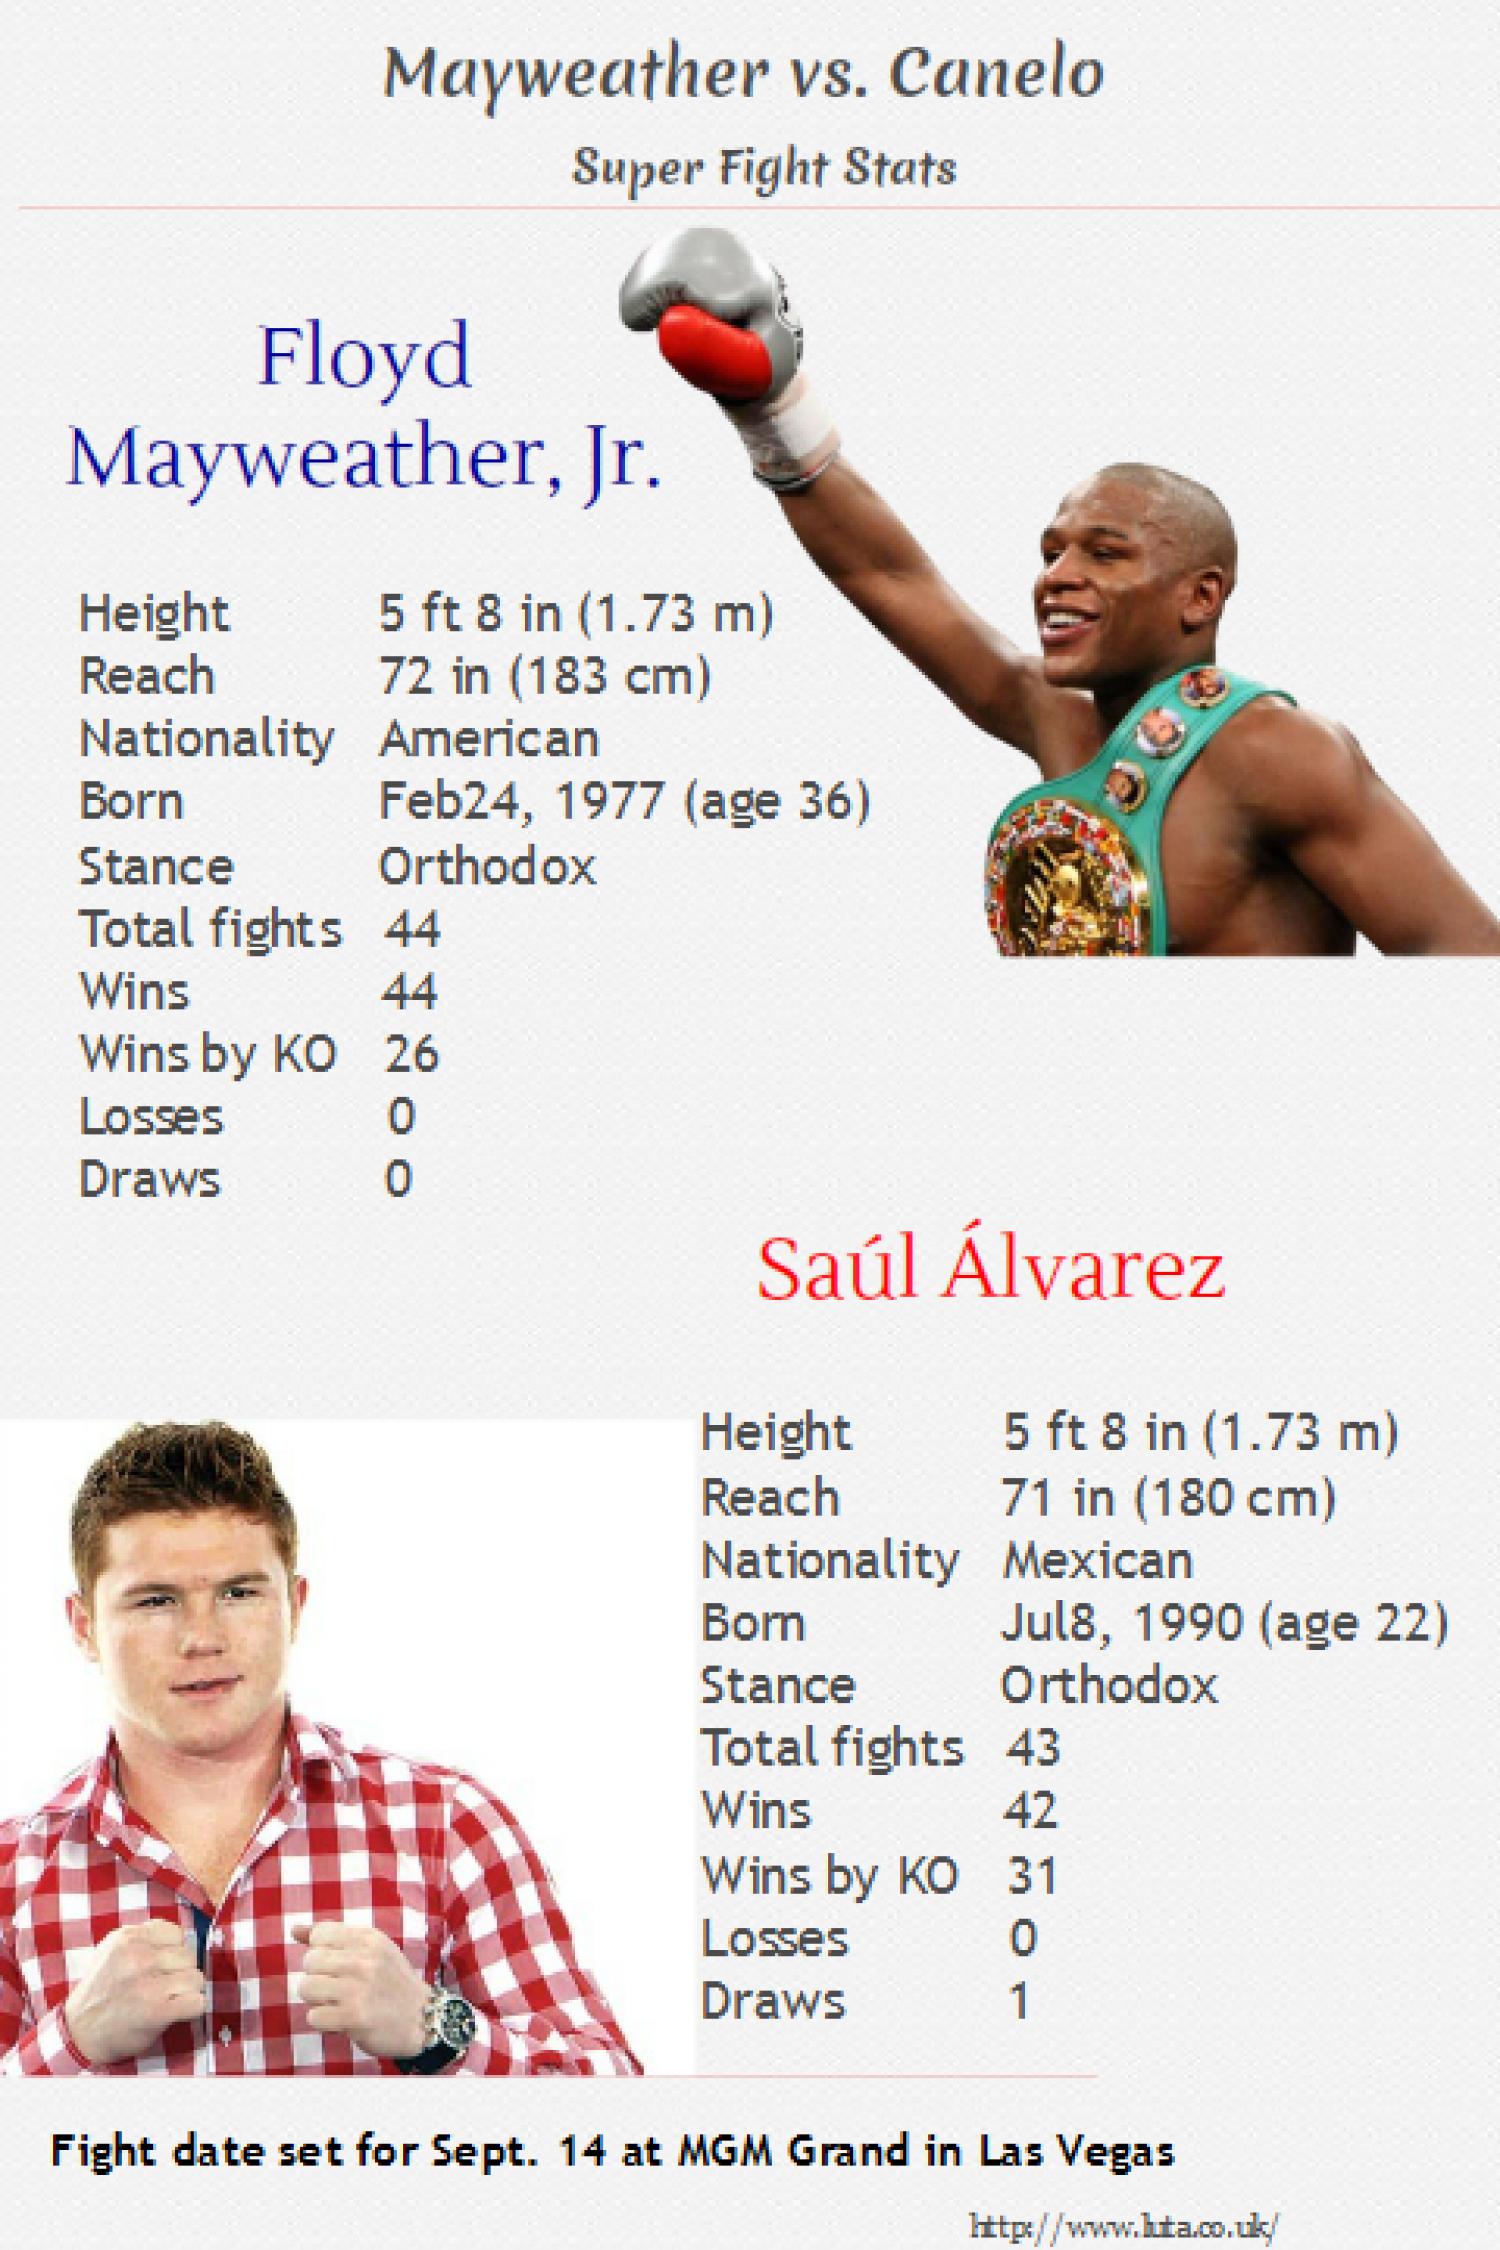 Floyd Mayweather Jr. vs Canelo Alvarez Super Fight  Infographic